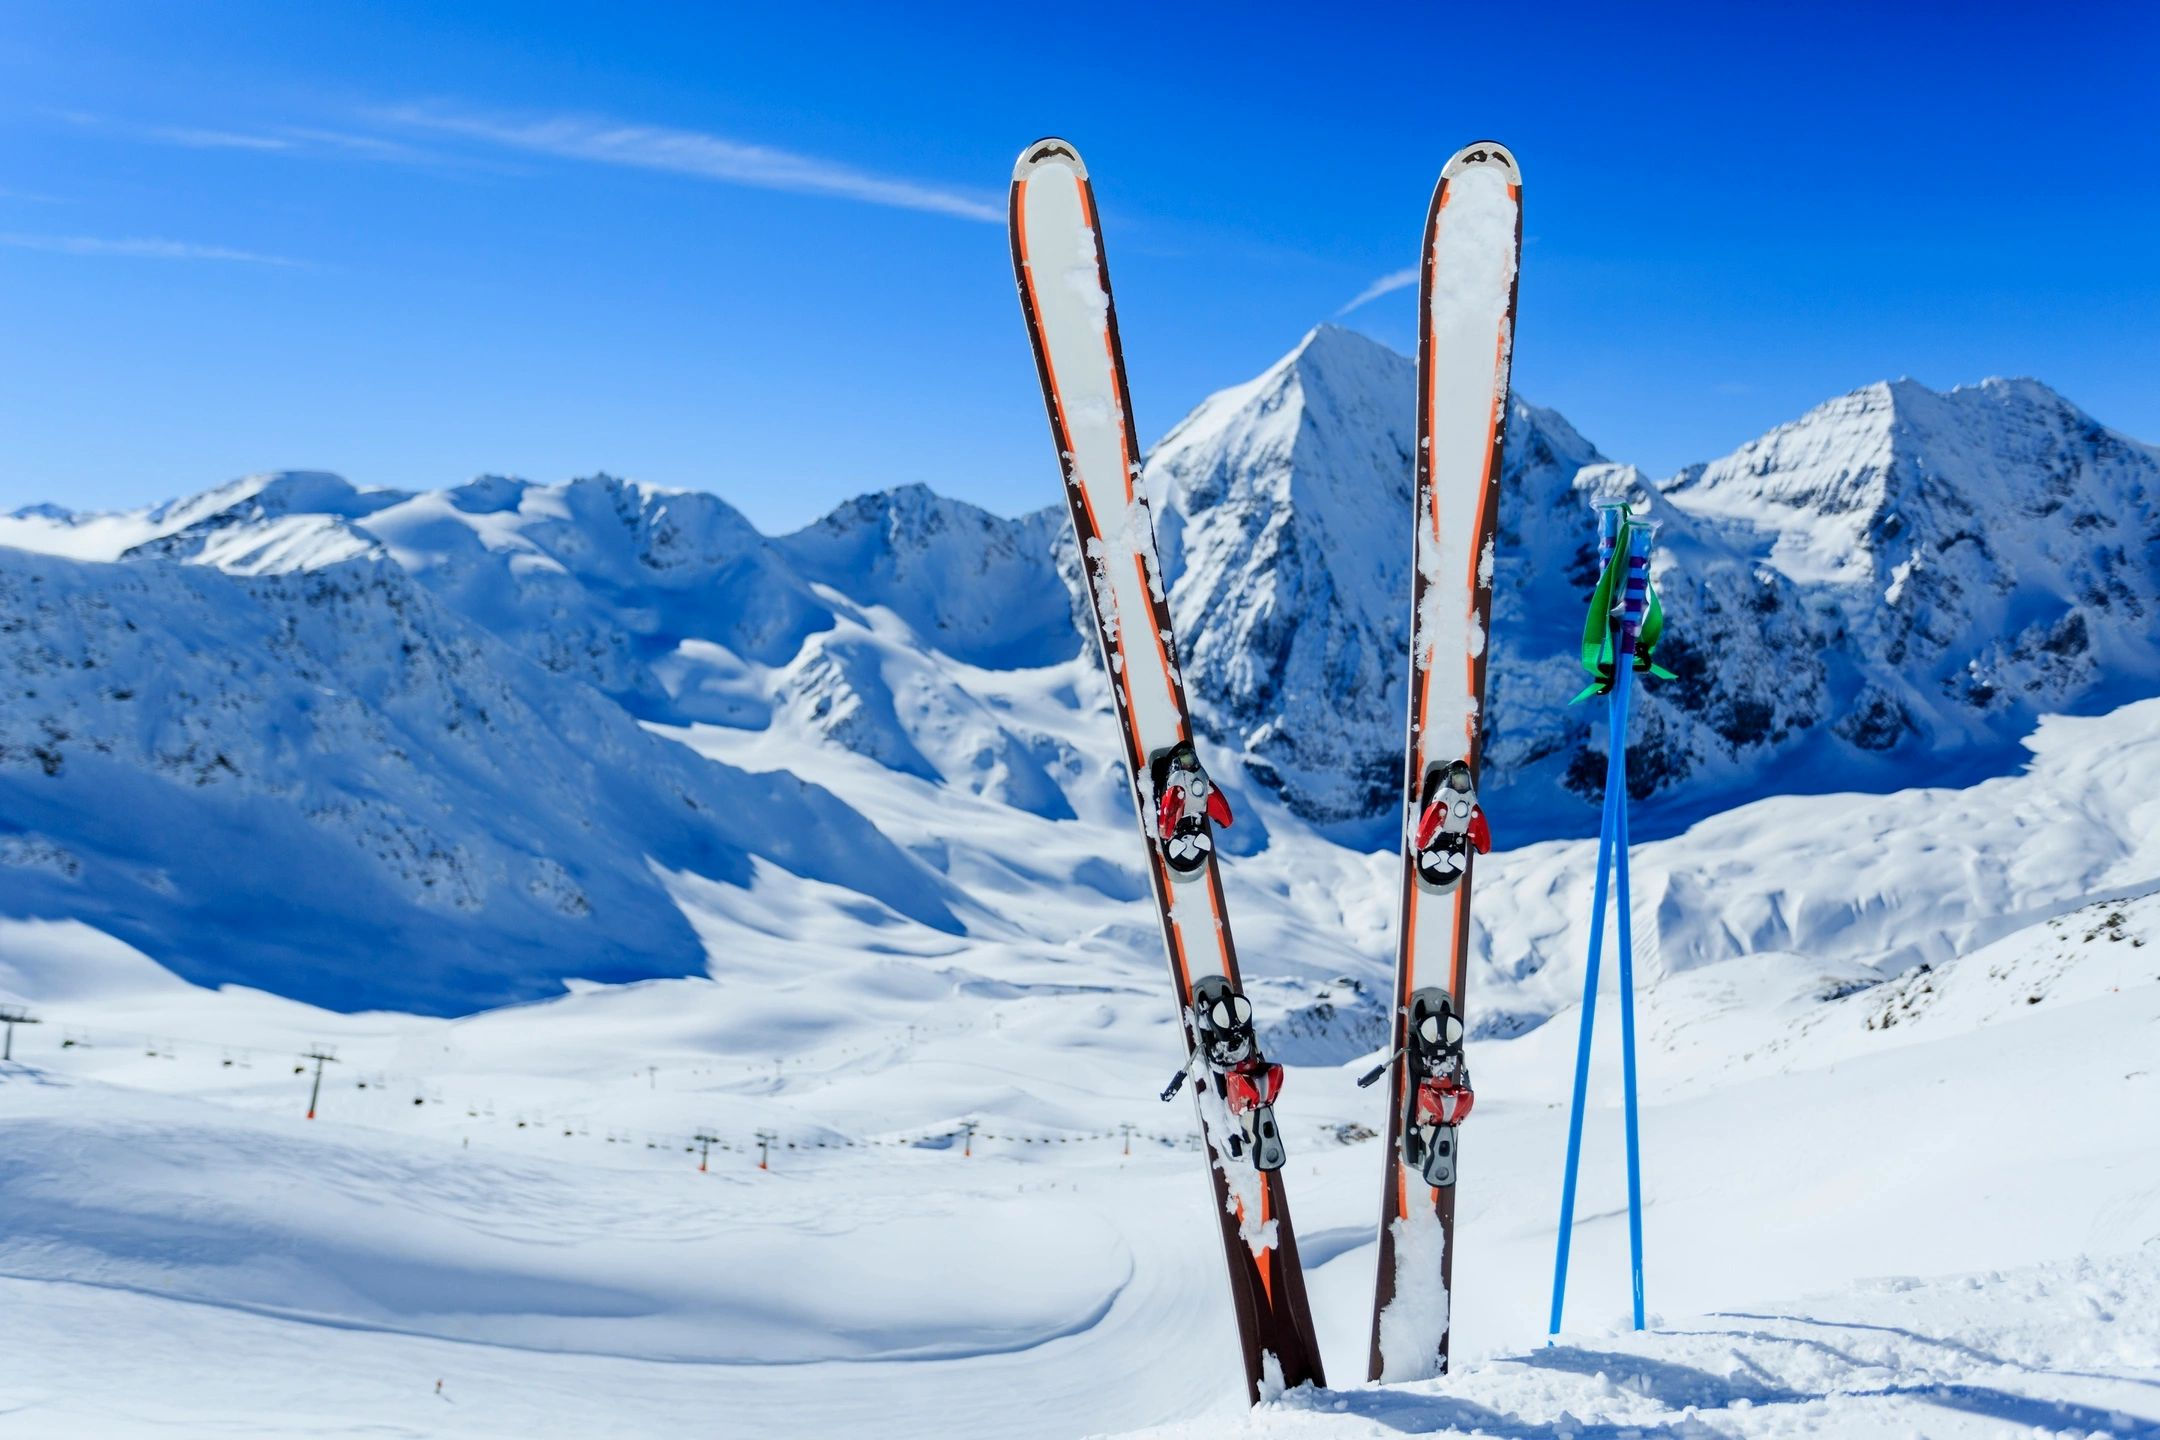 Lessons from Skiing